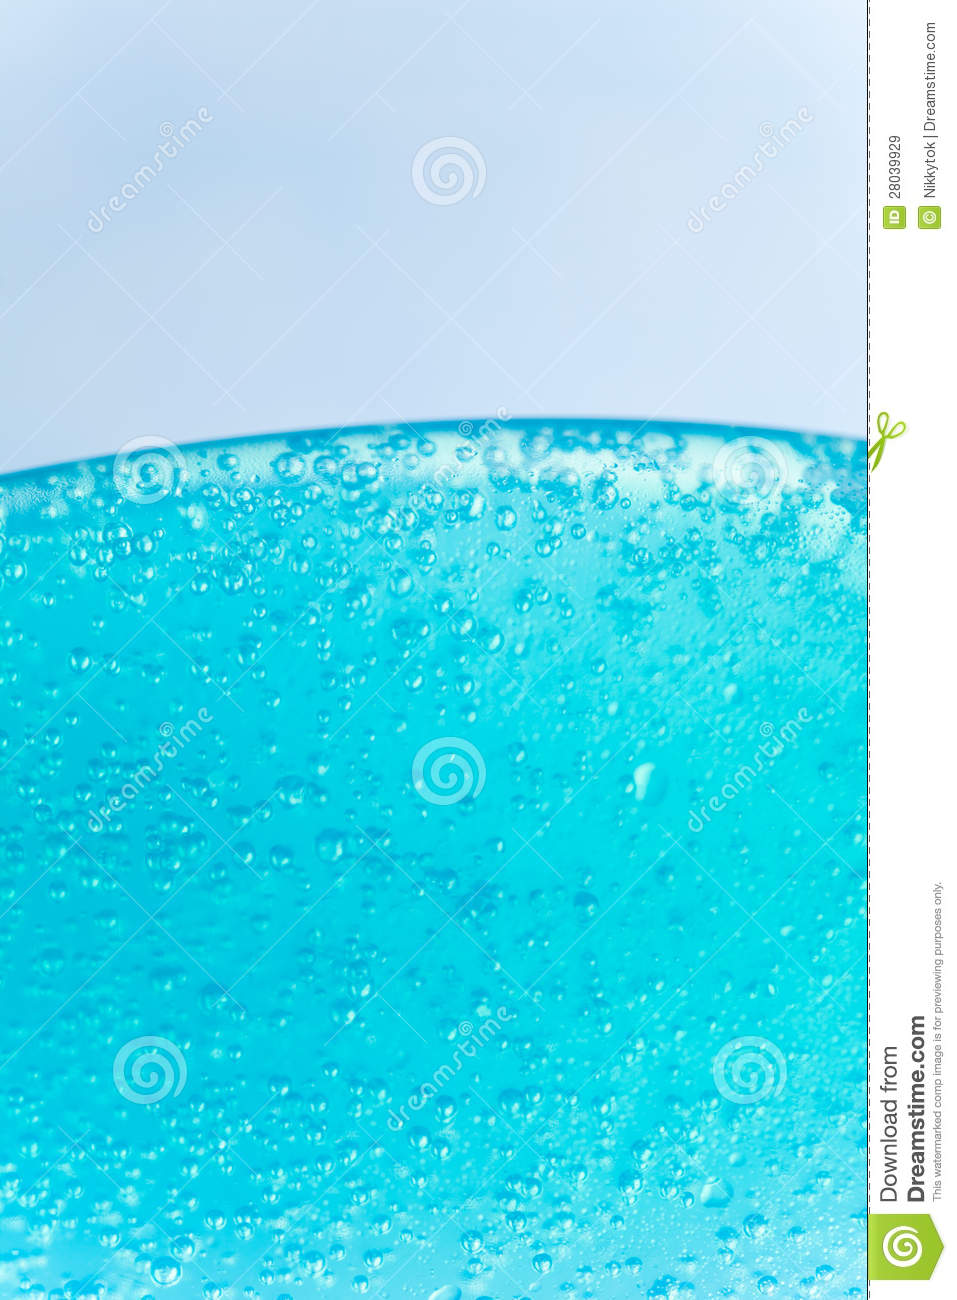 Shower Gel Background Stock Image Image Of Cleaning